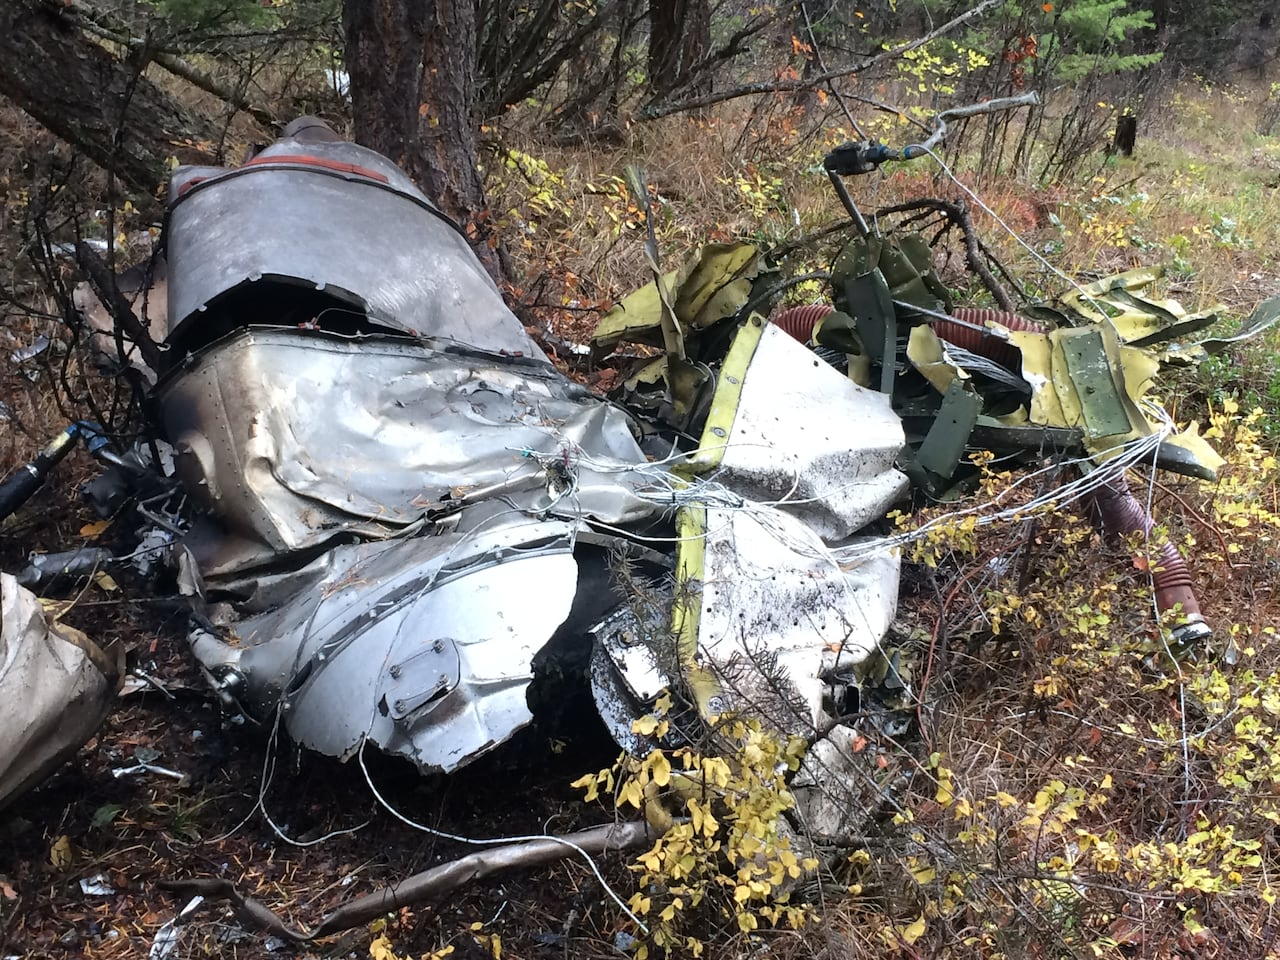 Jim Prentice's plane crash may have been caused by 'incapacitated' pilot, says former flight safety officer